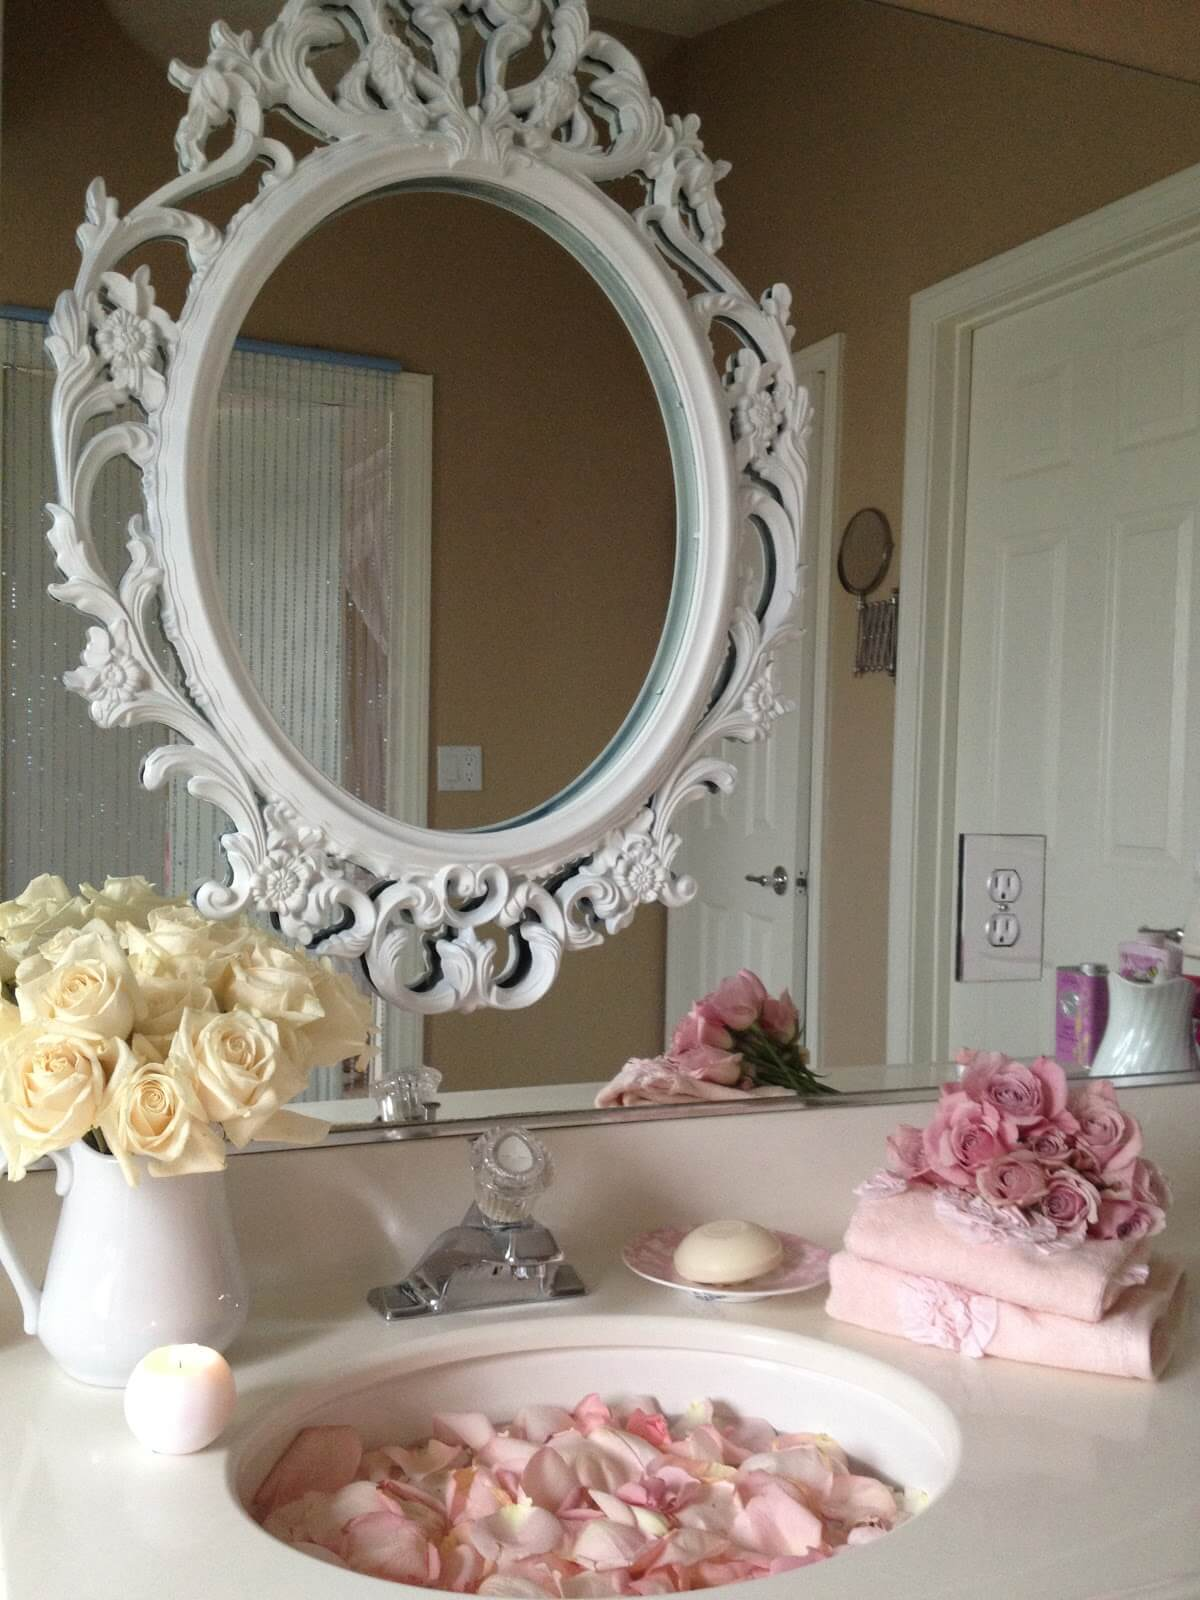 Pretty Vintage Above-Sink Mirror Frame